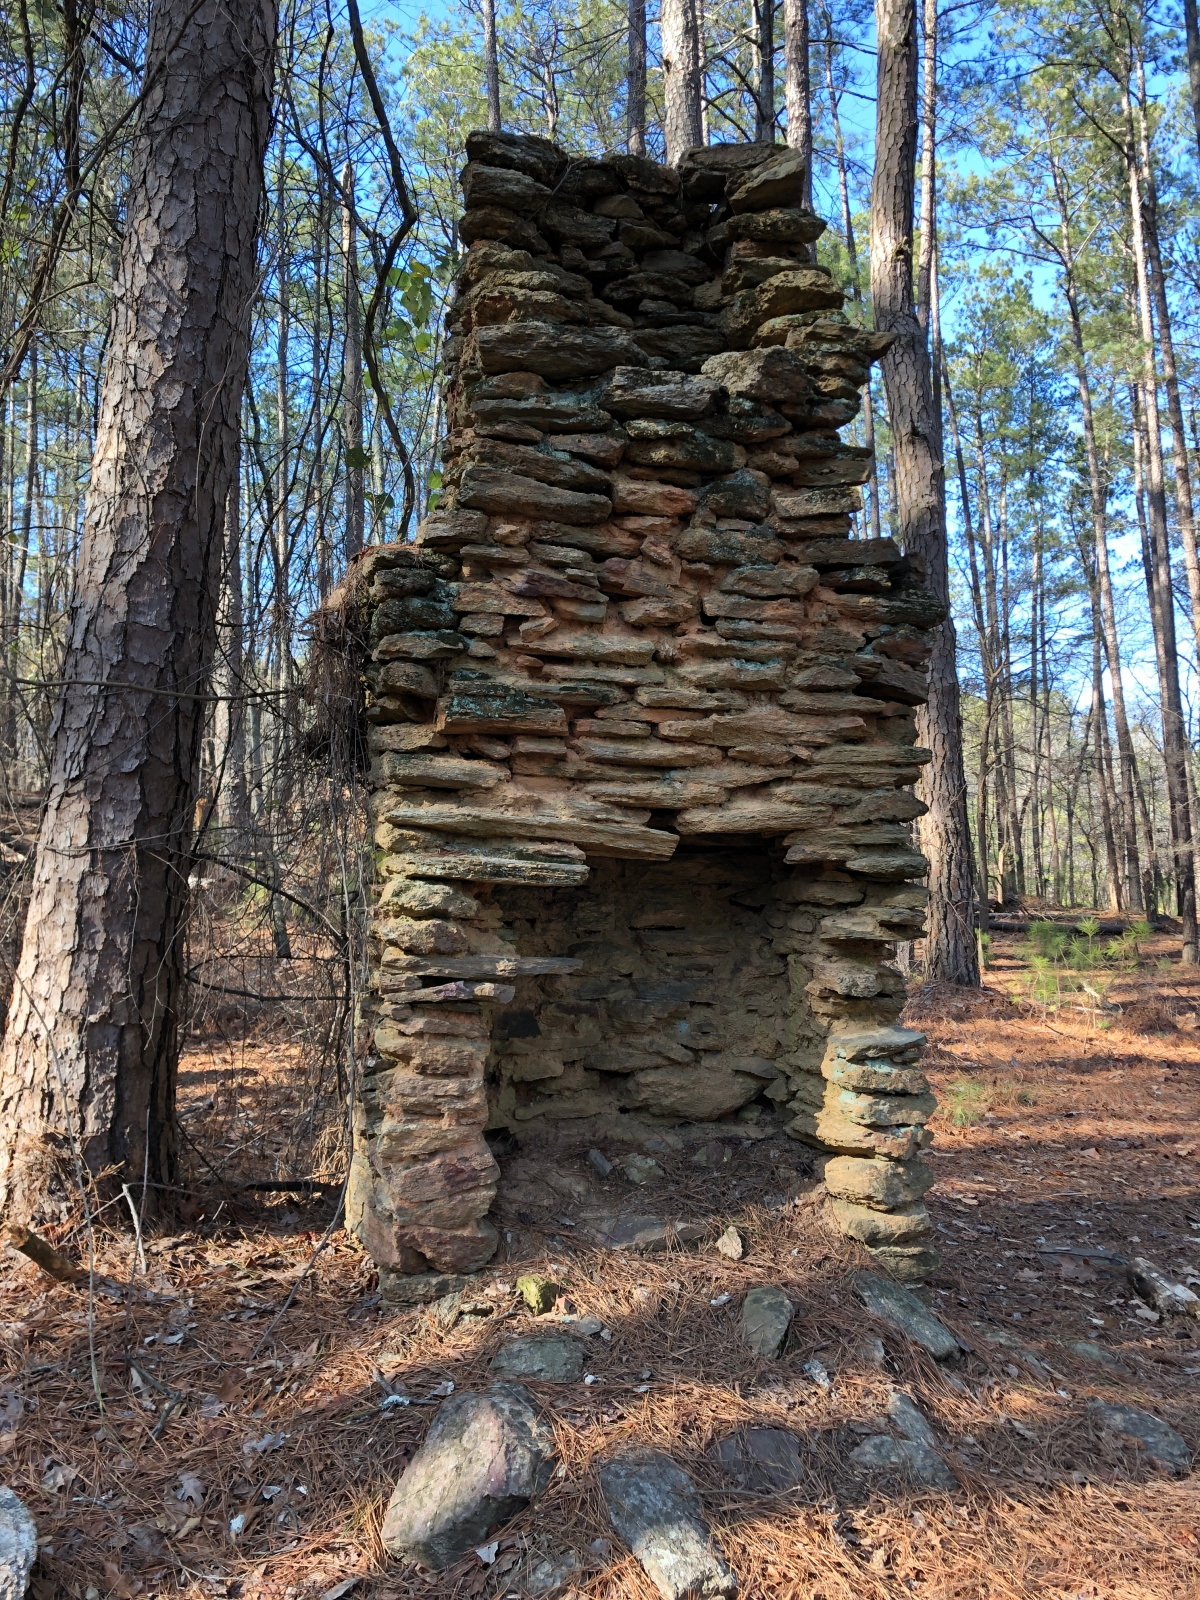 Homestead Chimney at Red Top Mountain State Park